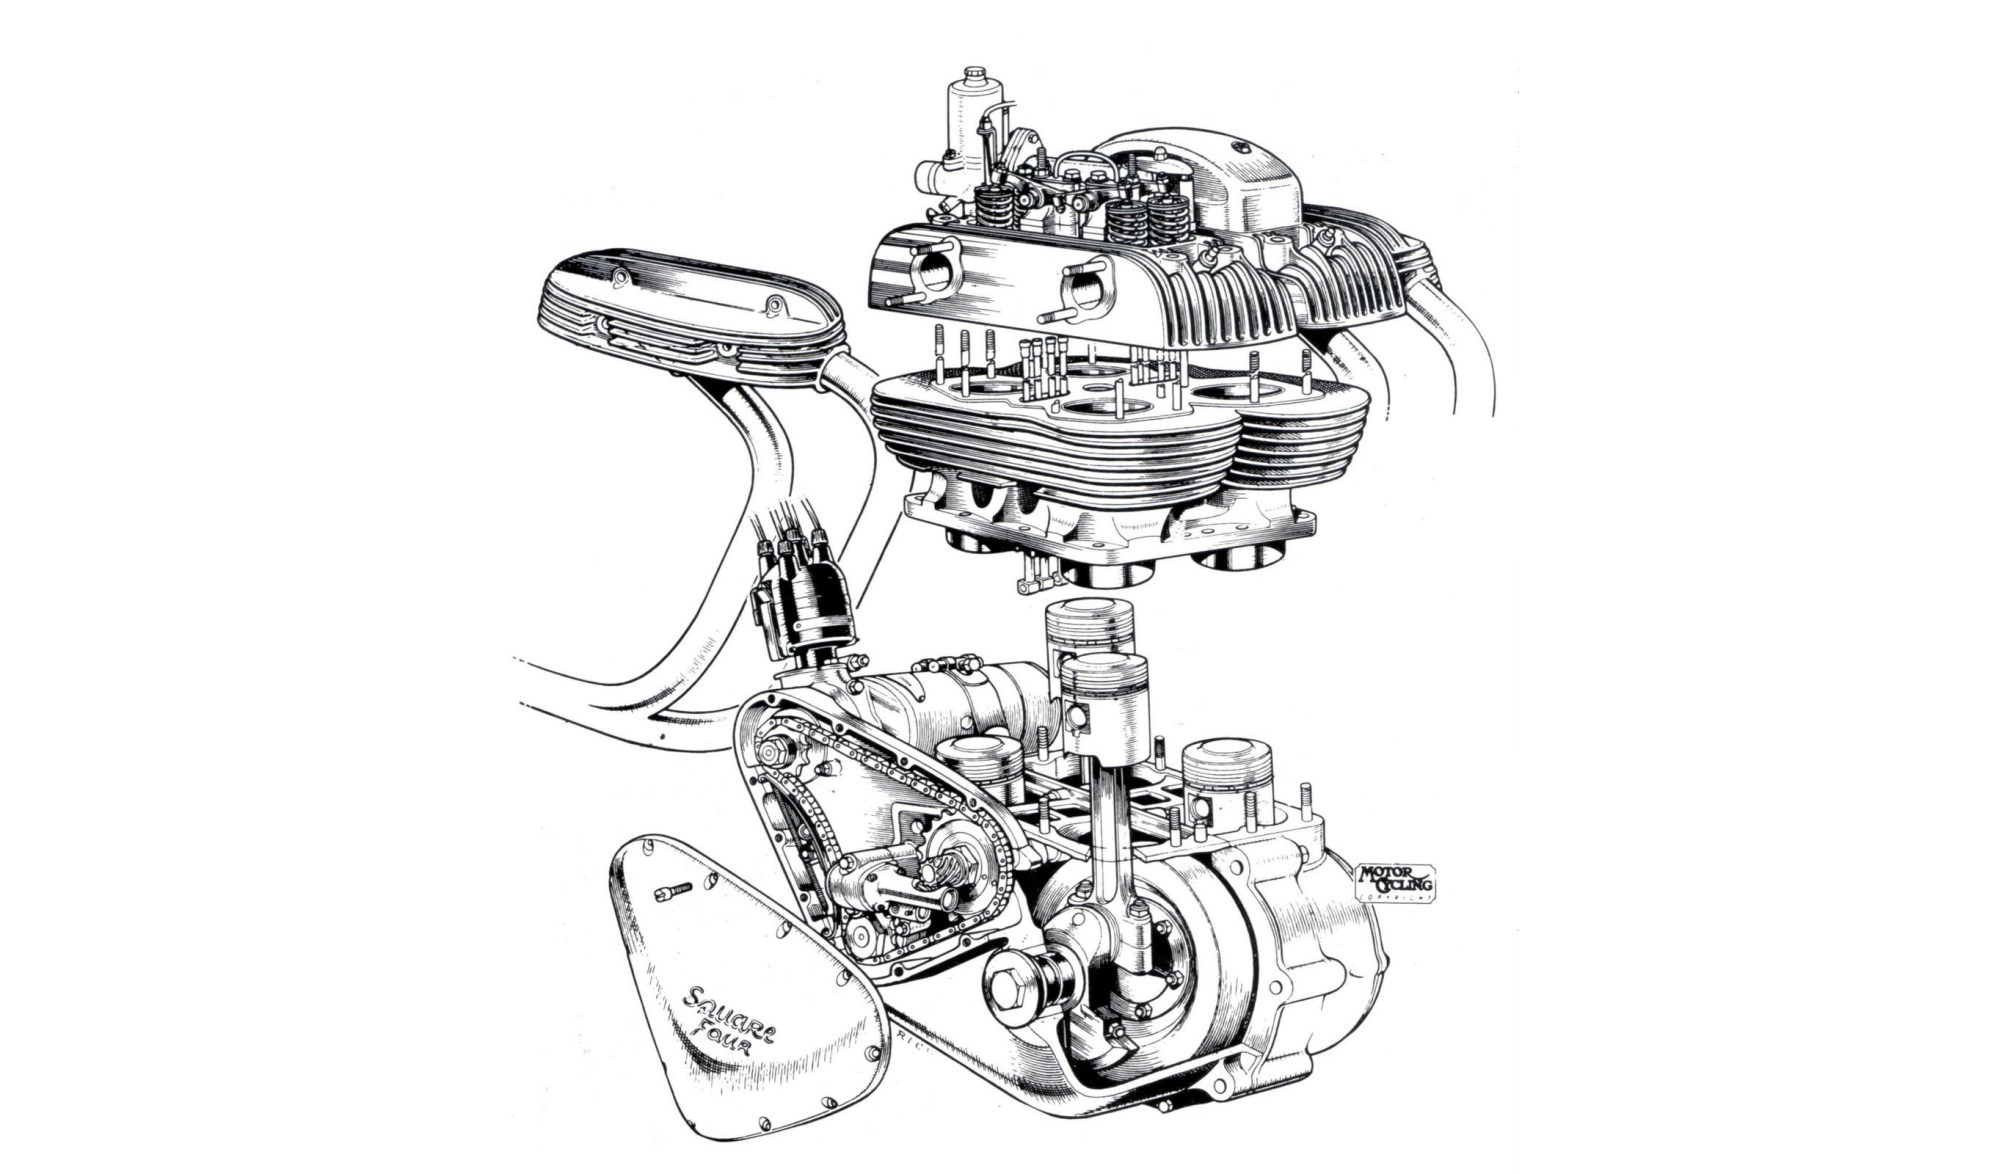 hight resolution of ariel square four engine cutaway